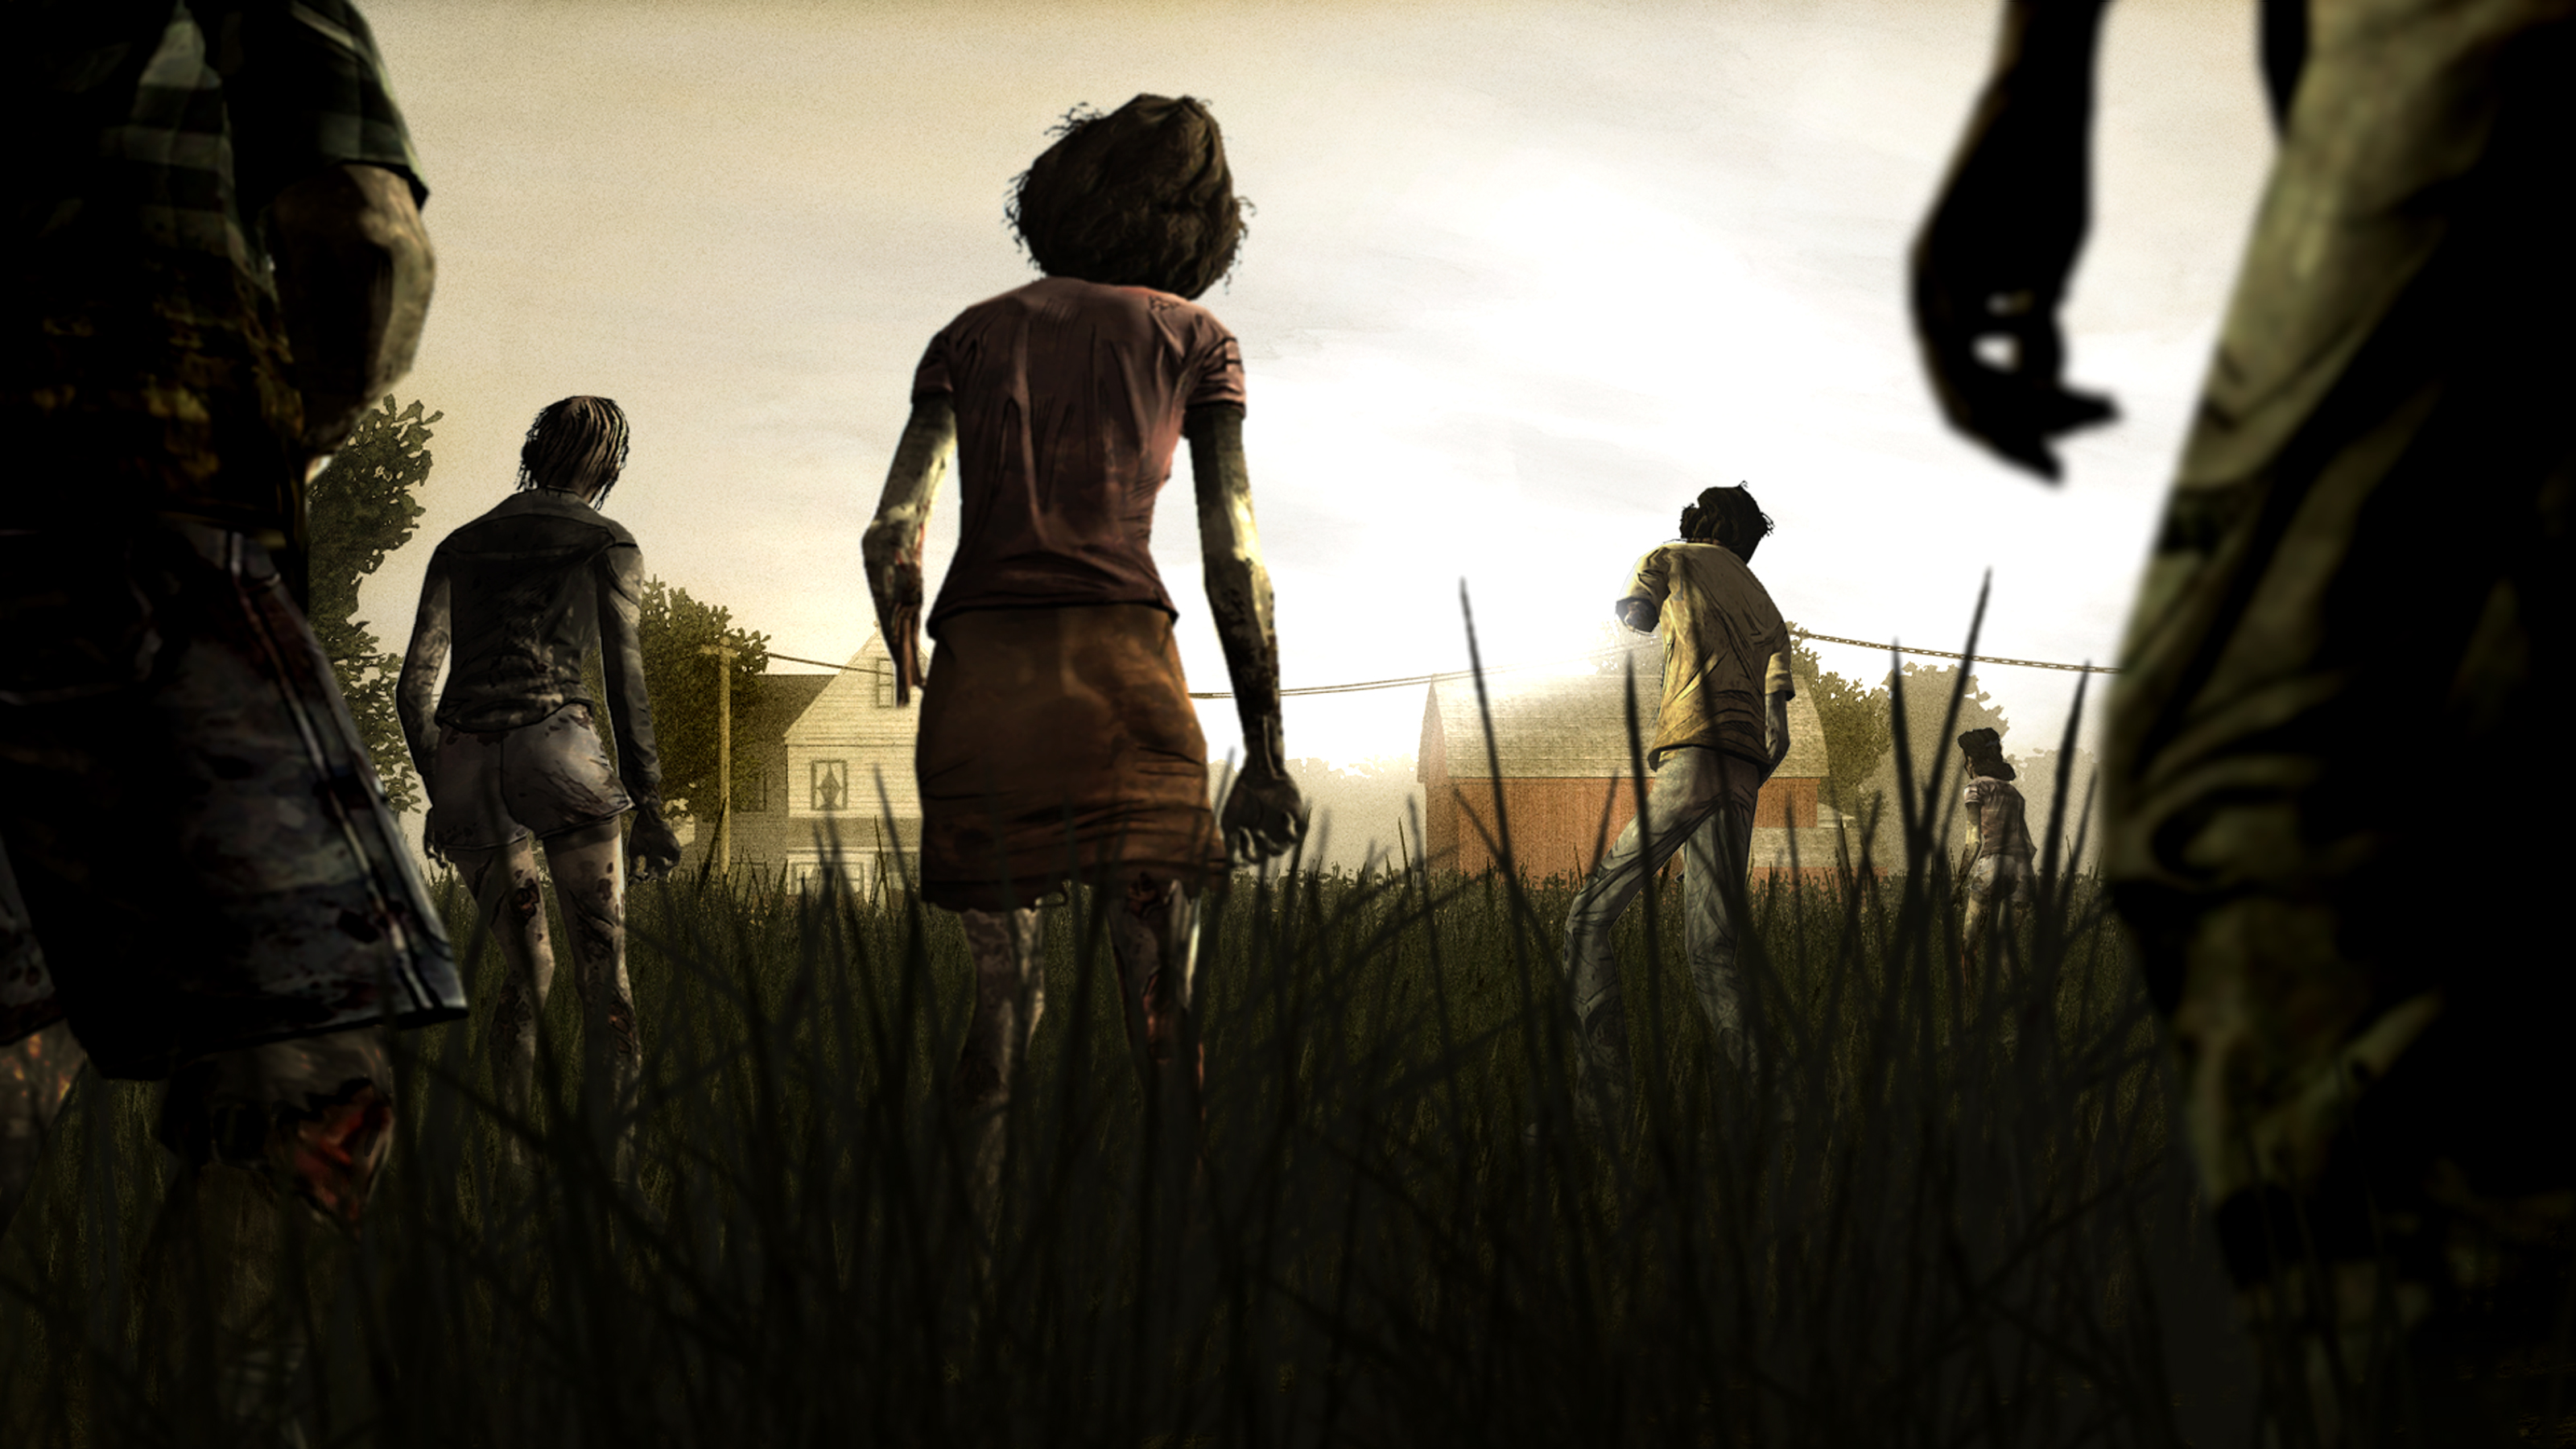 zombie The Walking Dead game wallpaper | Wallpup.com